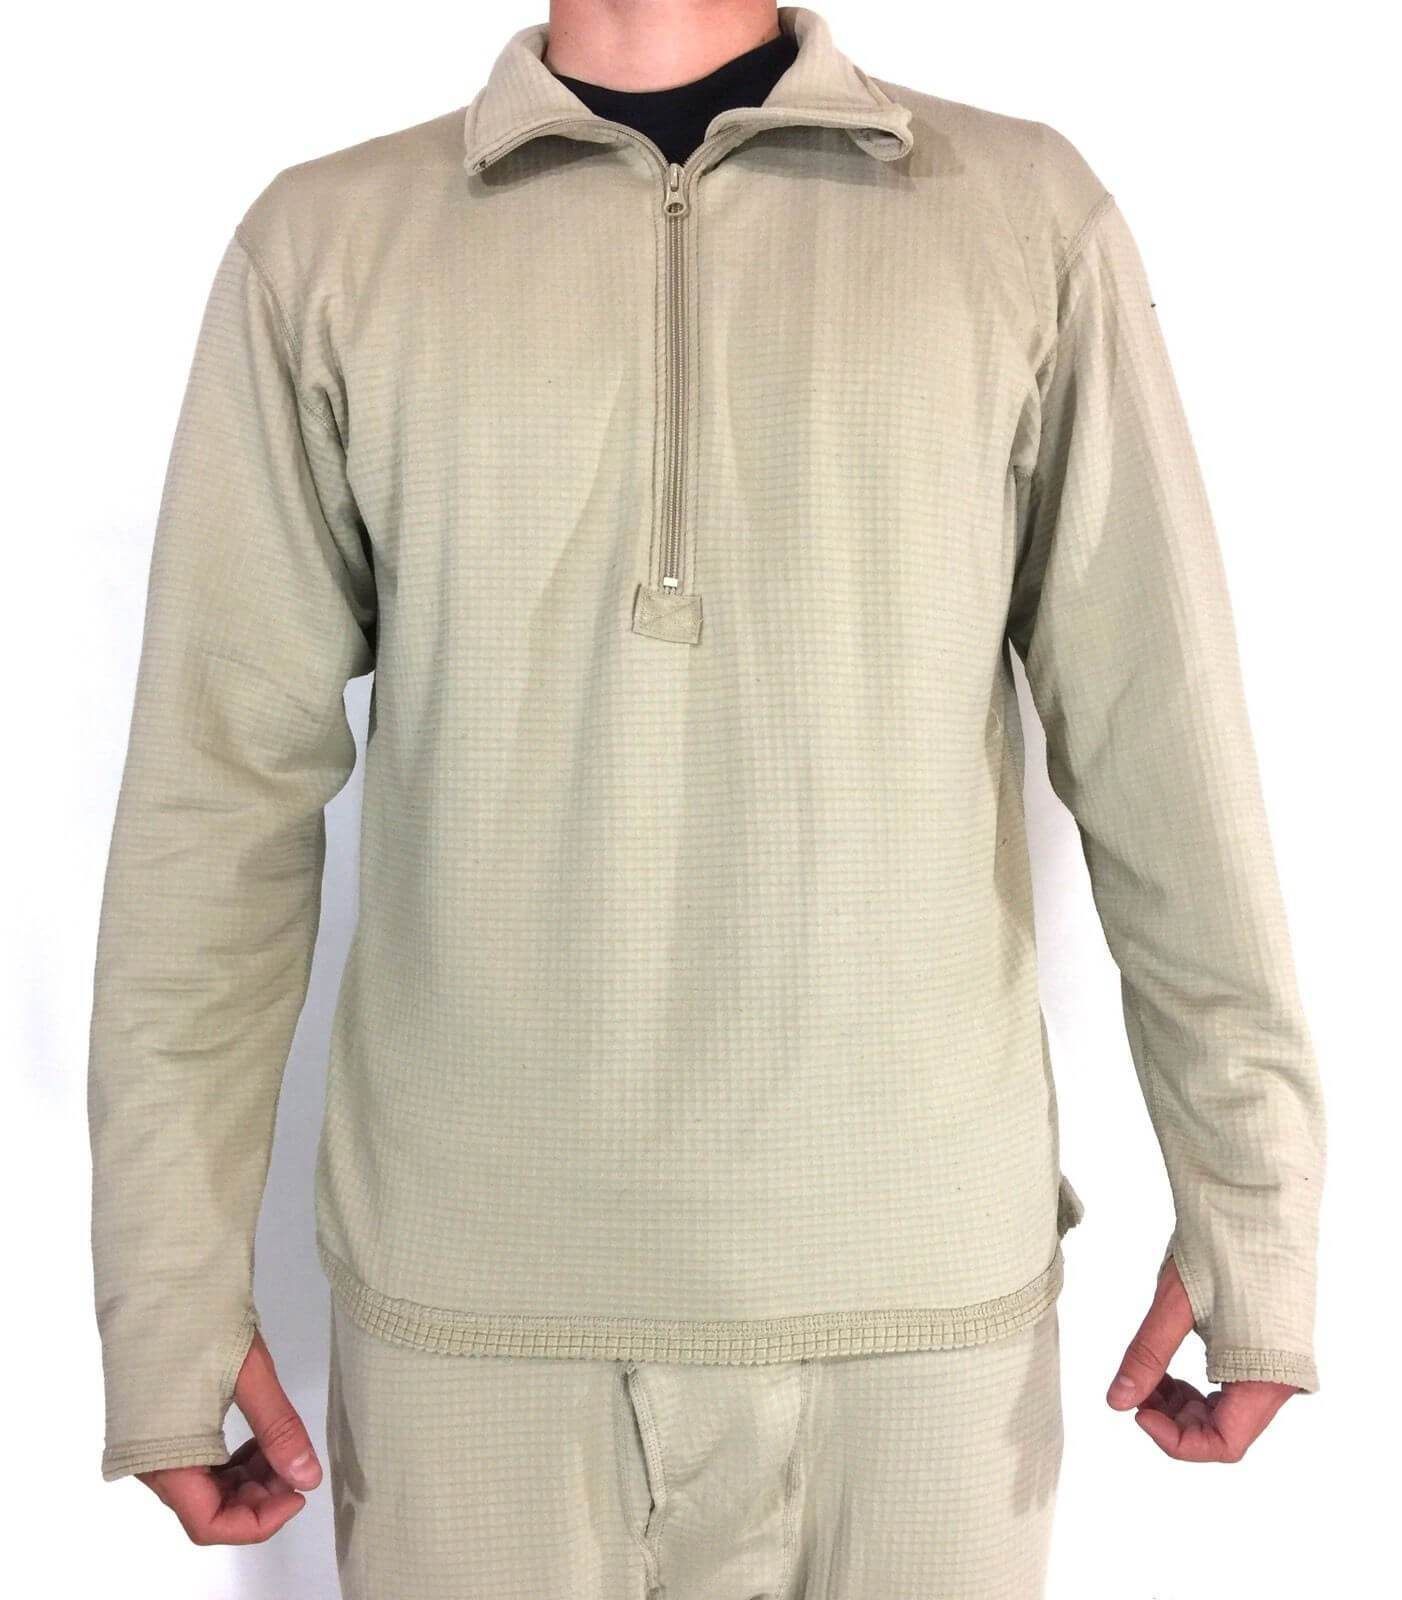 Army Waffle Top Military Thermal Undershirt, ECWCS LEVEL 2 Mid Weight Shirt